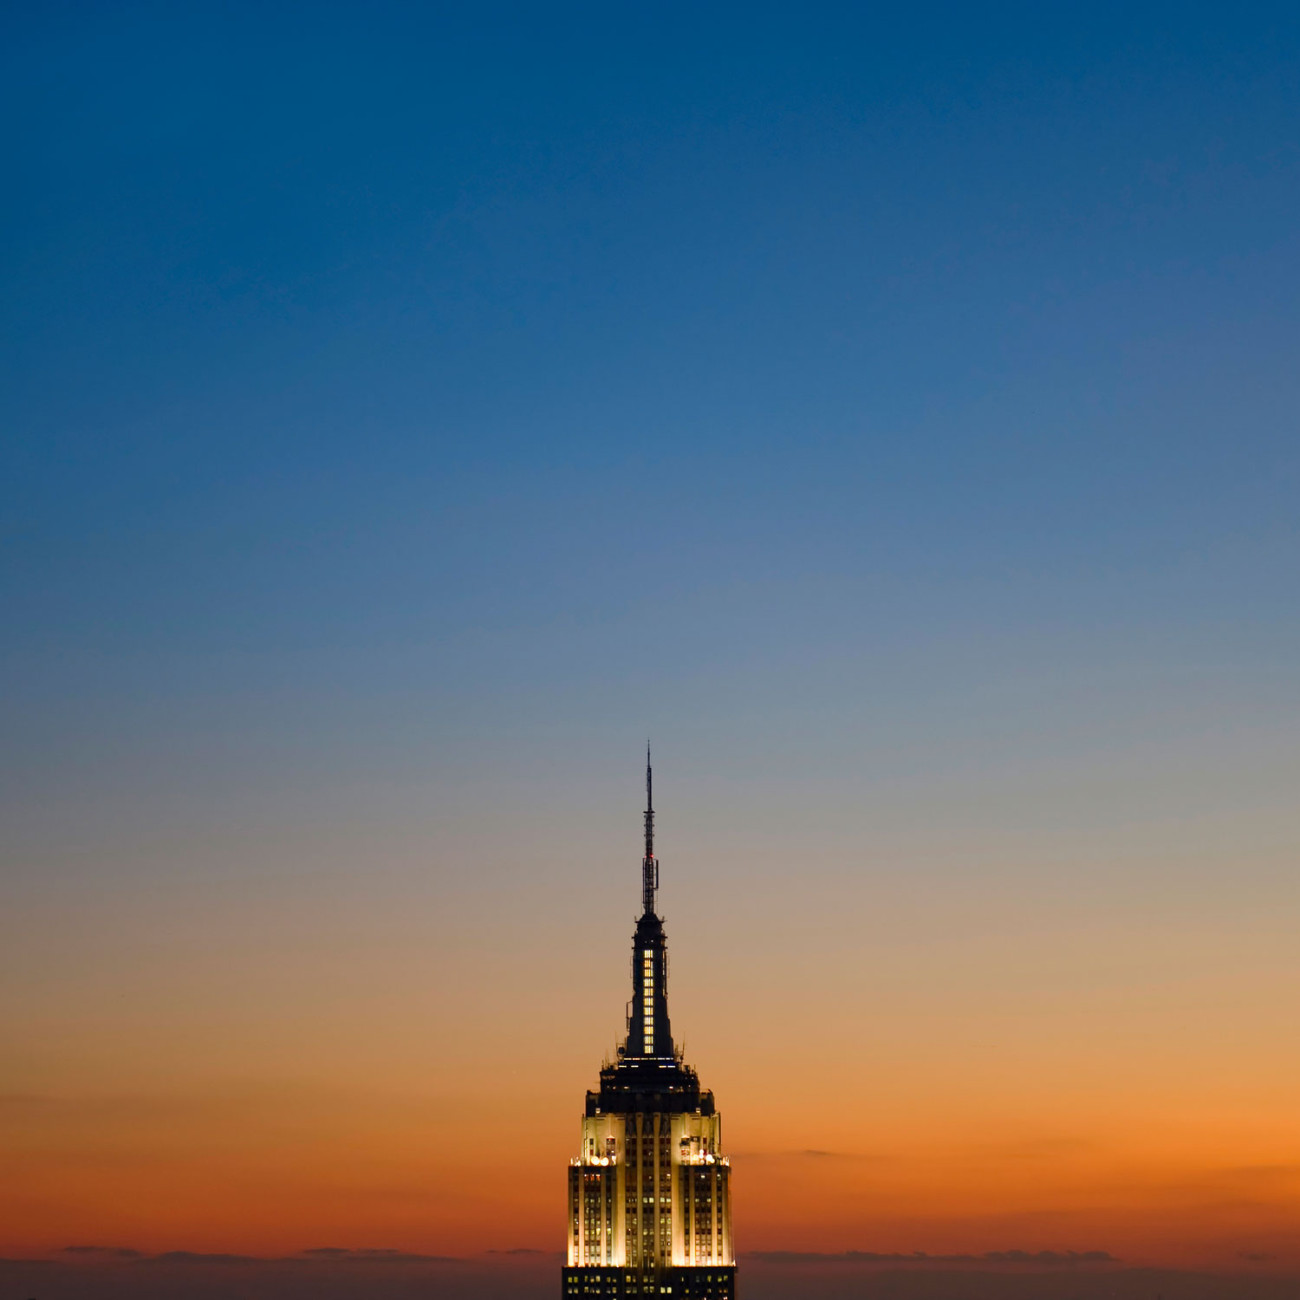 Top of the Empire State Building at evening, NY, 2008